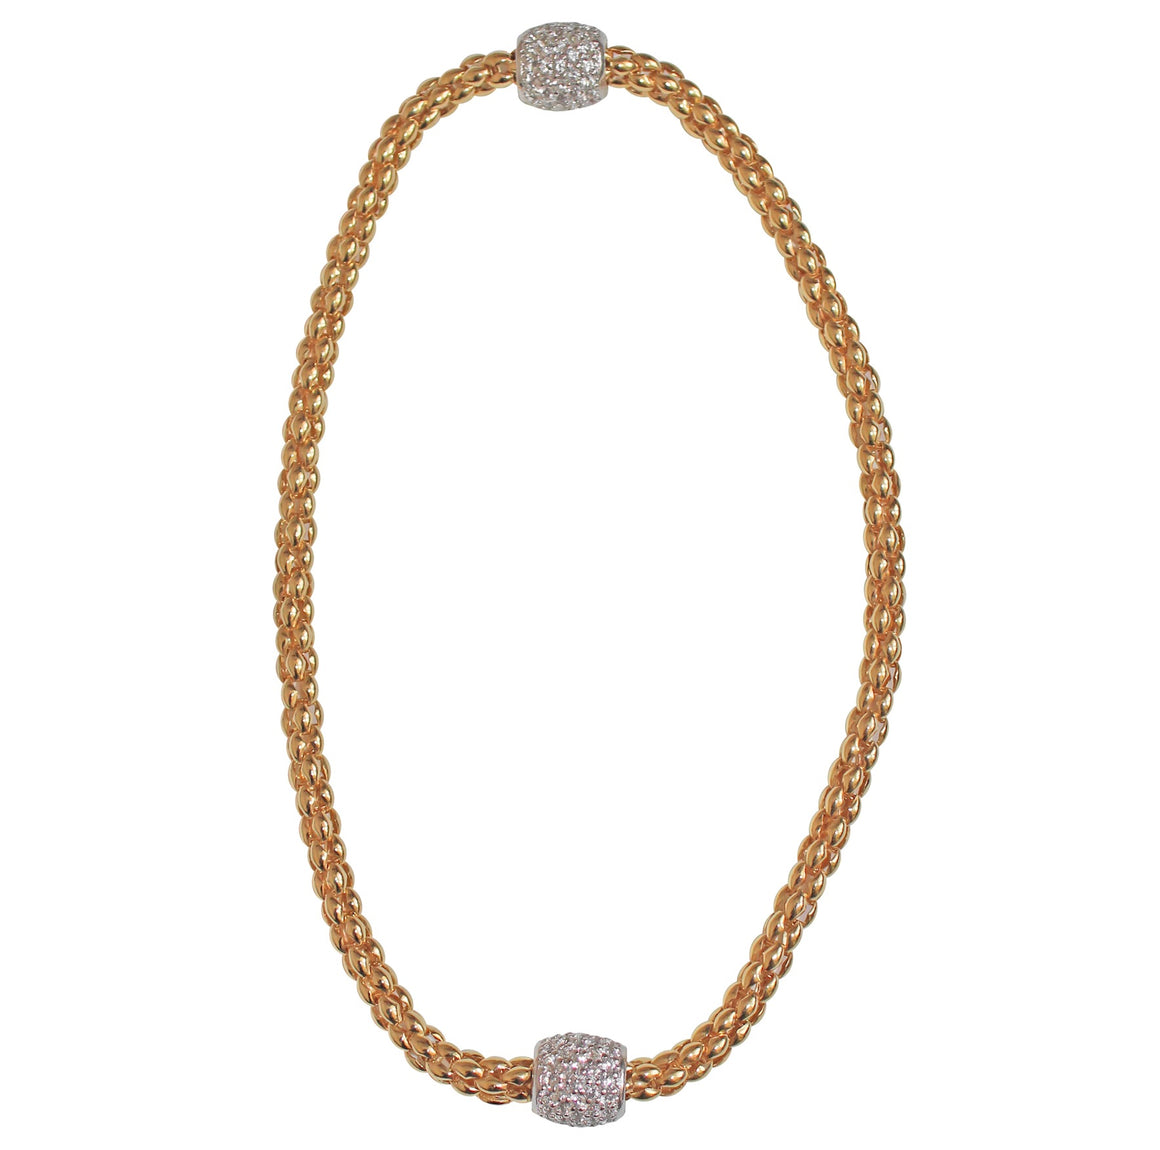 Pave Magnetic Choker- Yellow Gold Plated on Sterling Silver